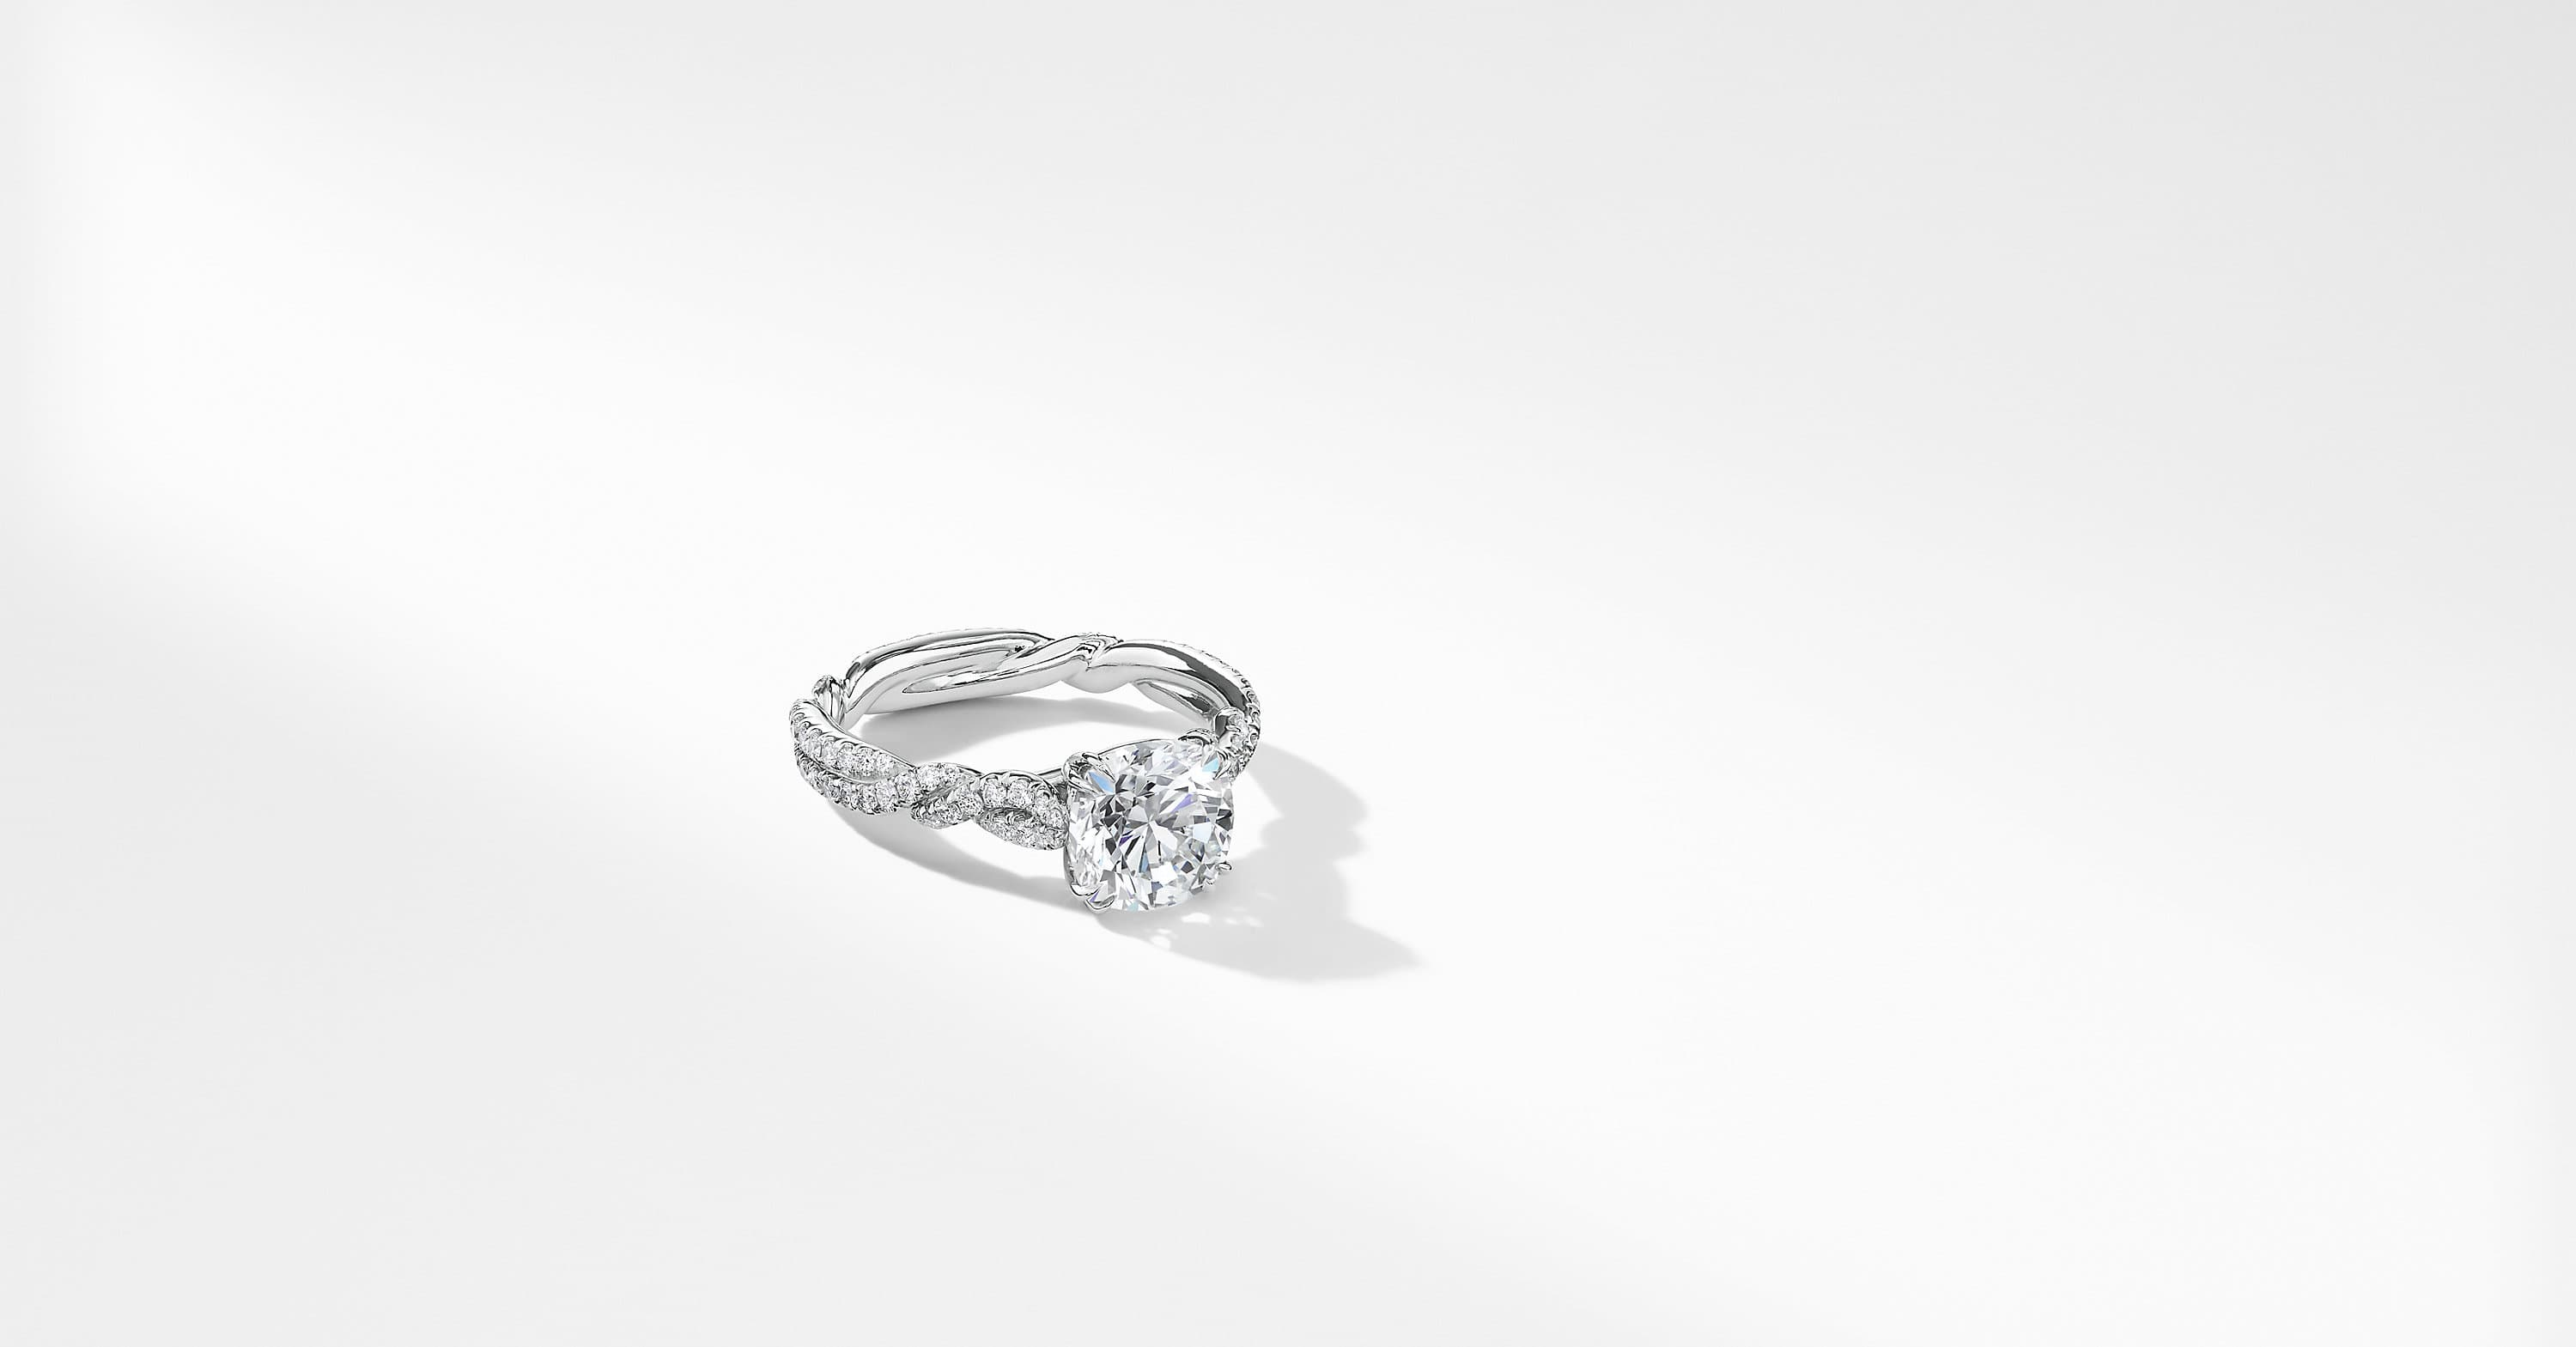 DY Wisteria Engagement Ring in Platinum, DY Signature Cut